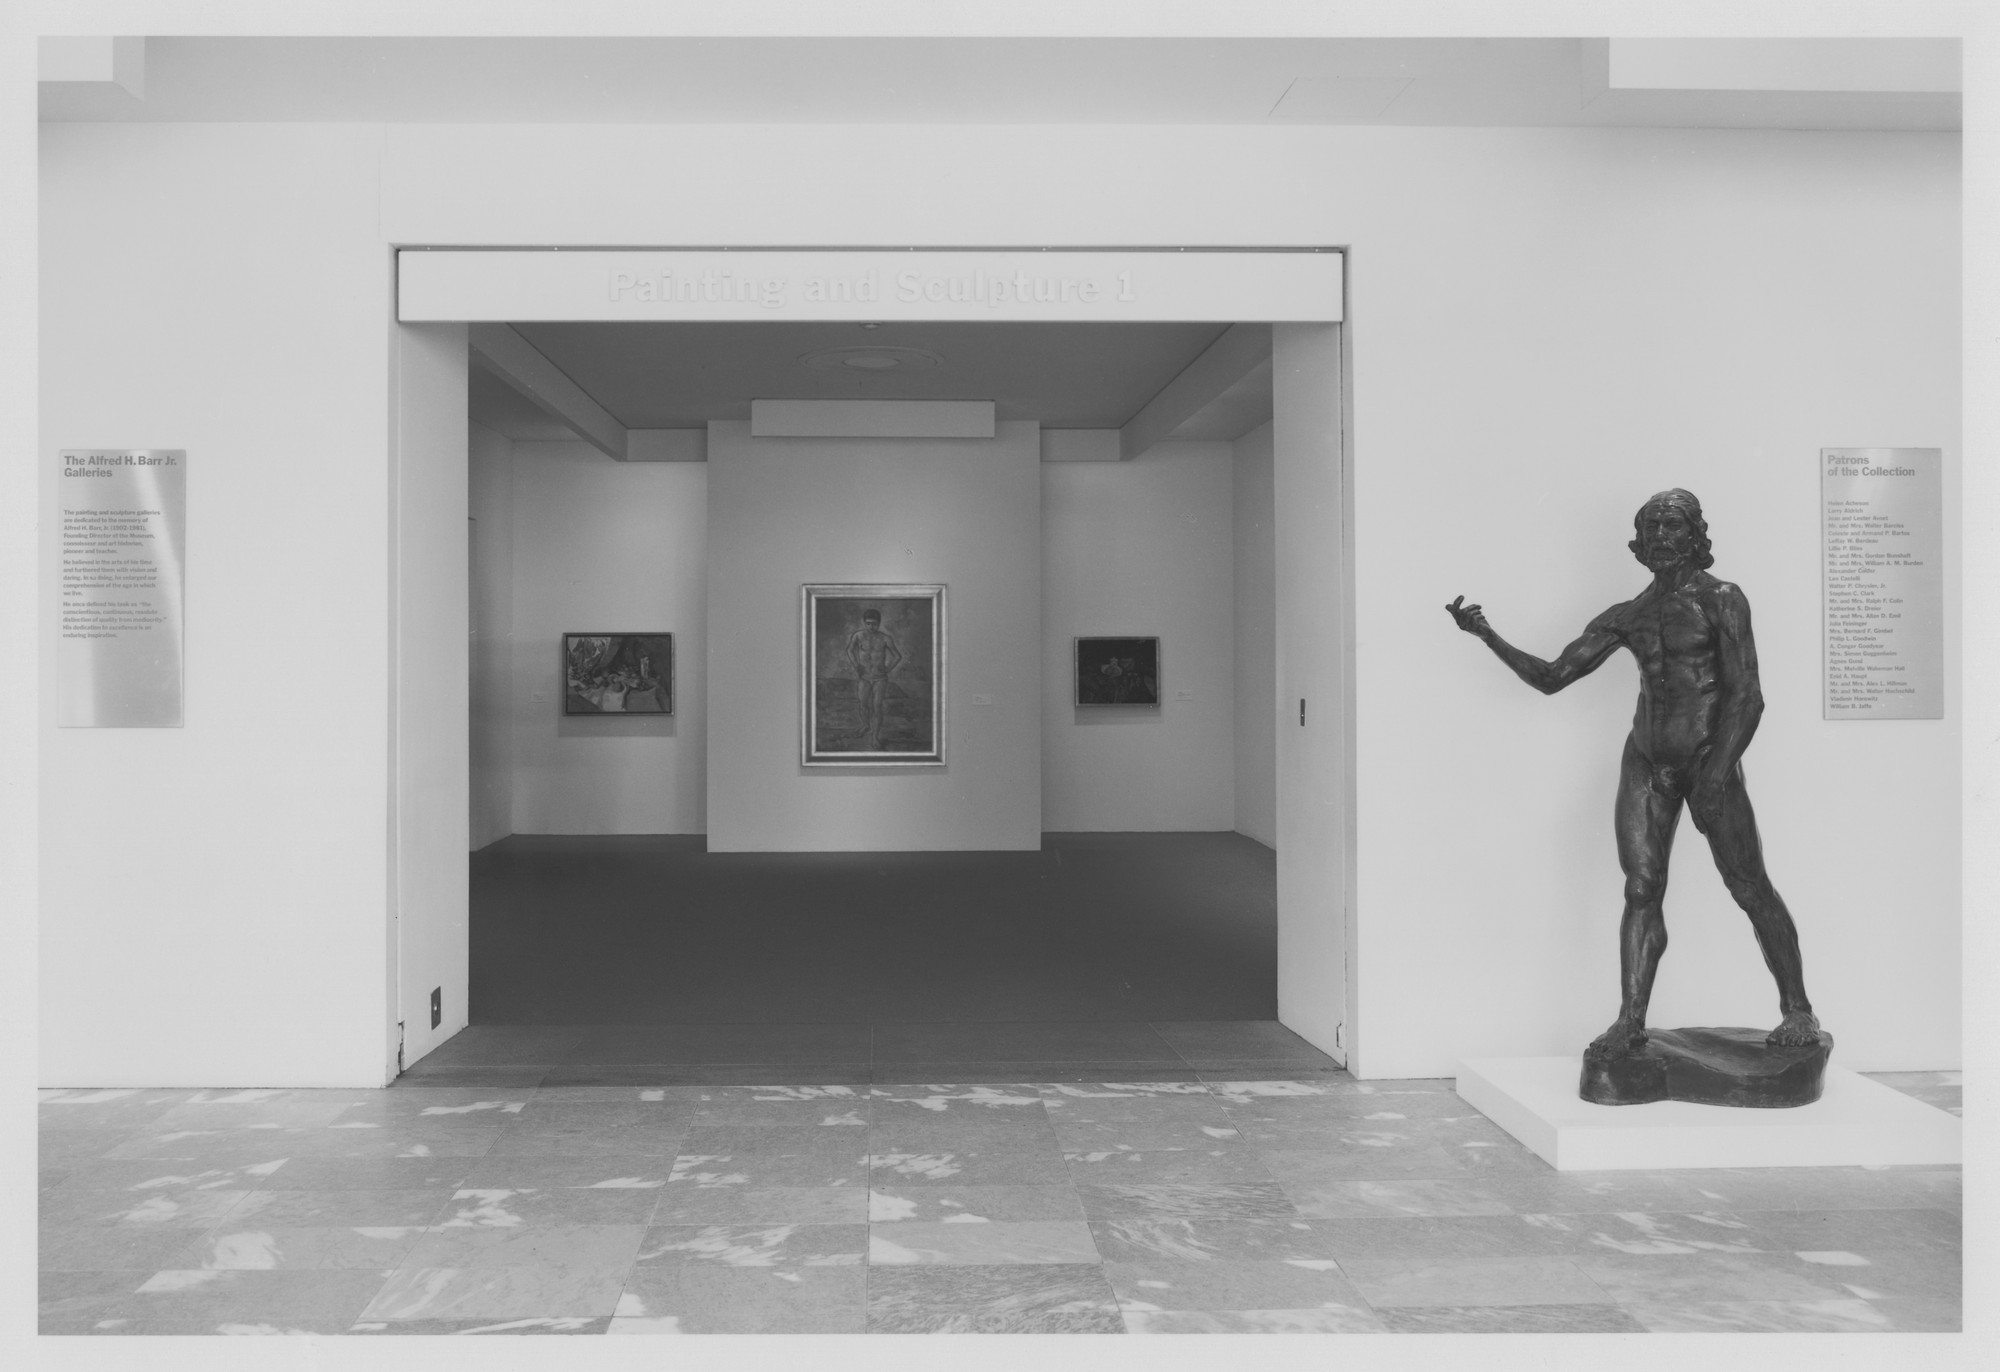 "Installation view of the exhibition, ""Selections from the Permanent Collection of Painting and Sculpture"" c. 1993. Photographic Archive. The Museum of Modern Art Archives, New York. IN1656.1. Photograph by Mali Olatunji."